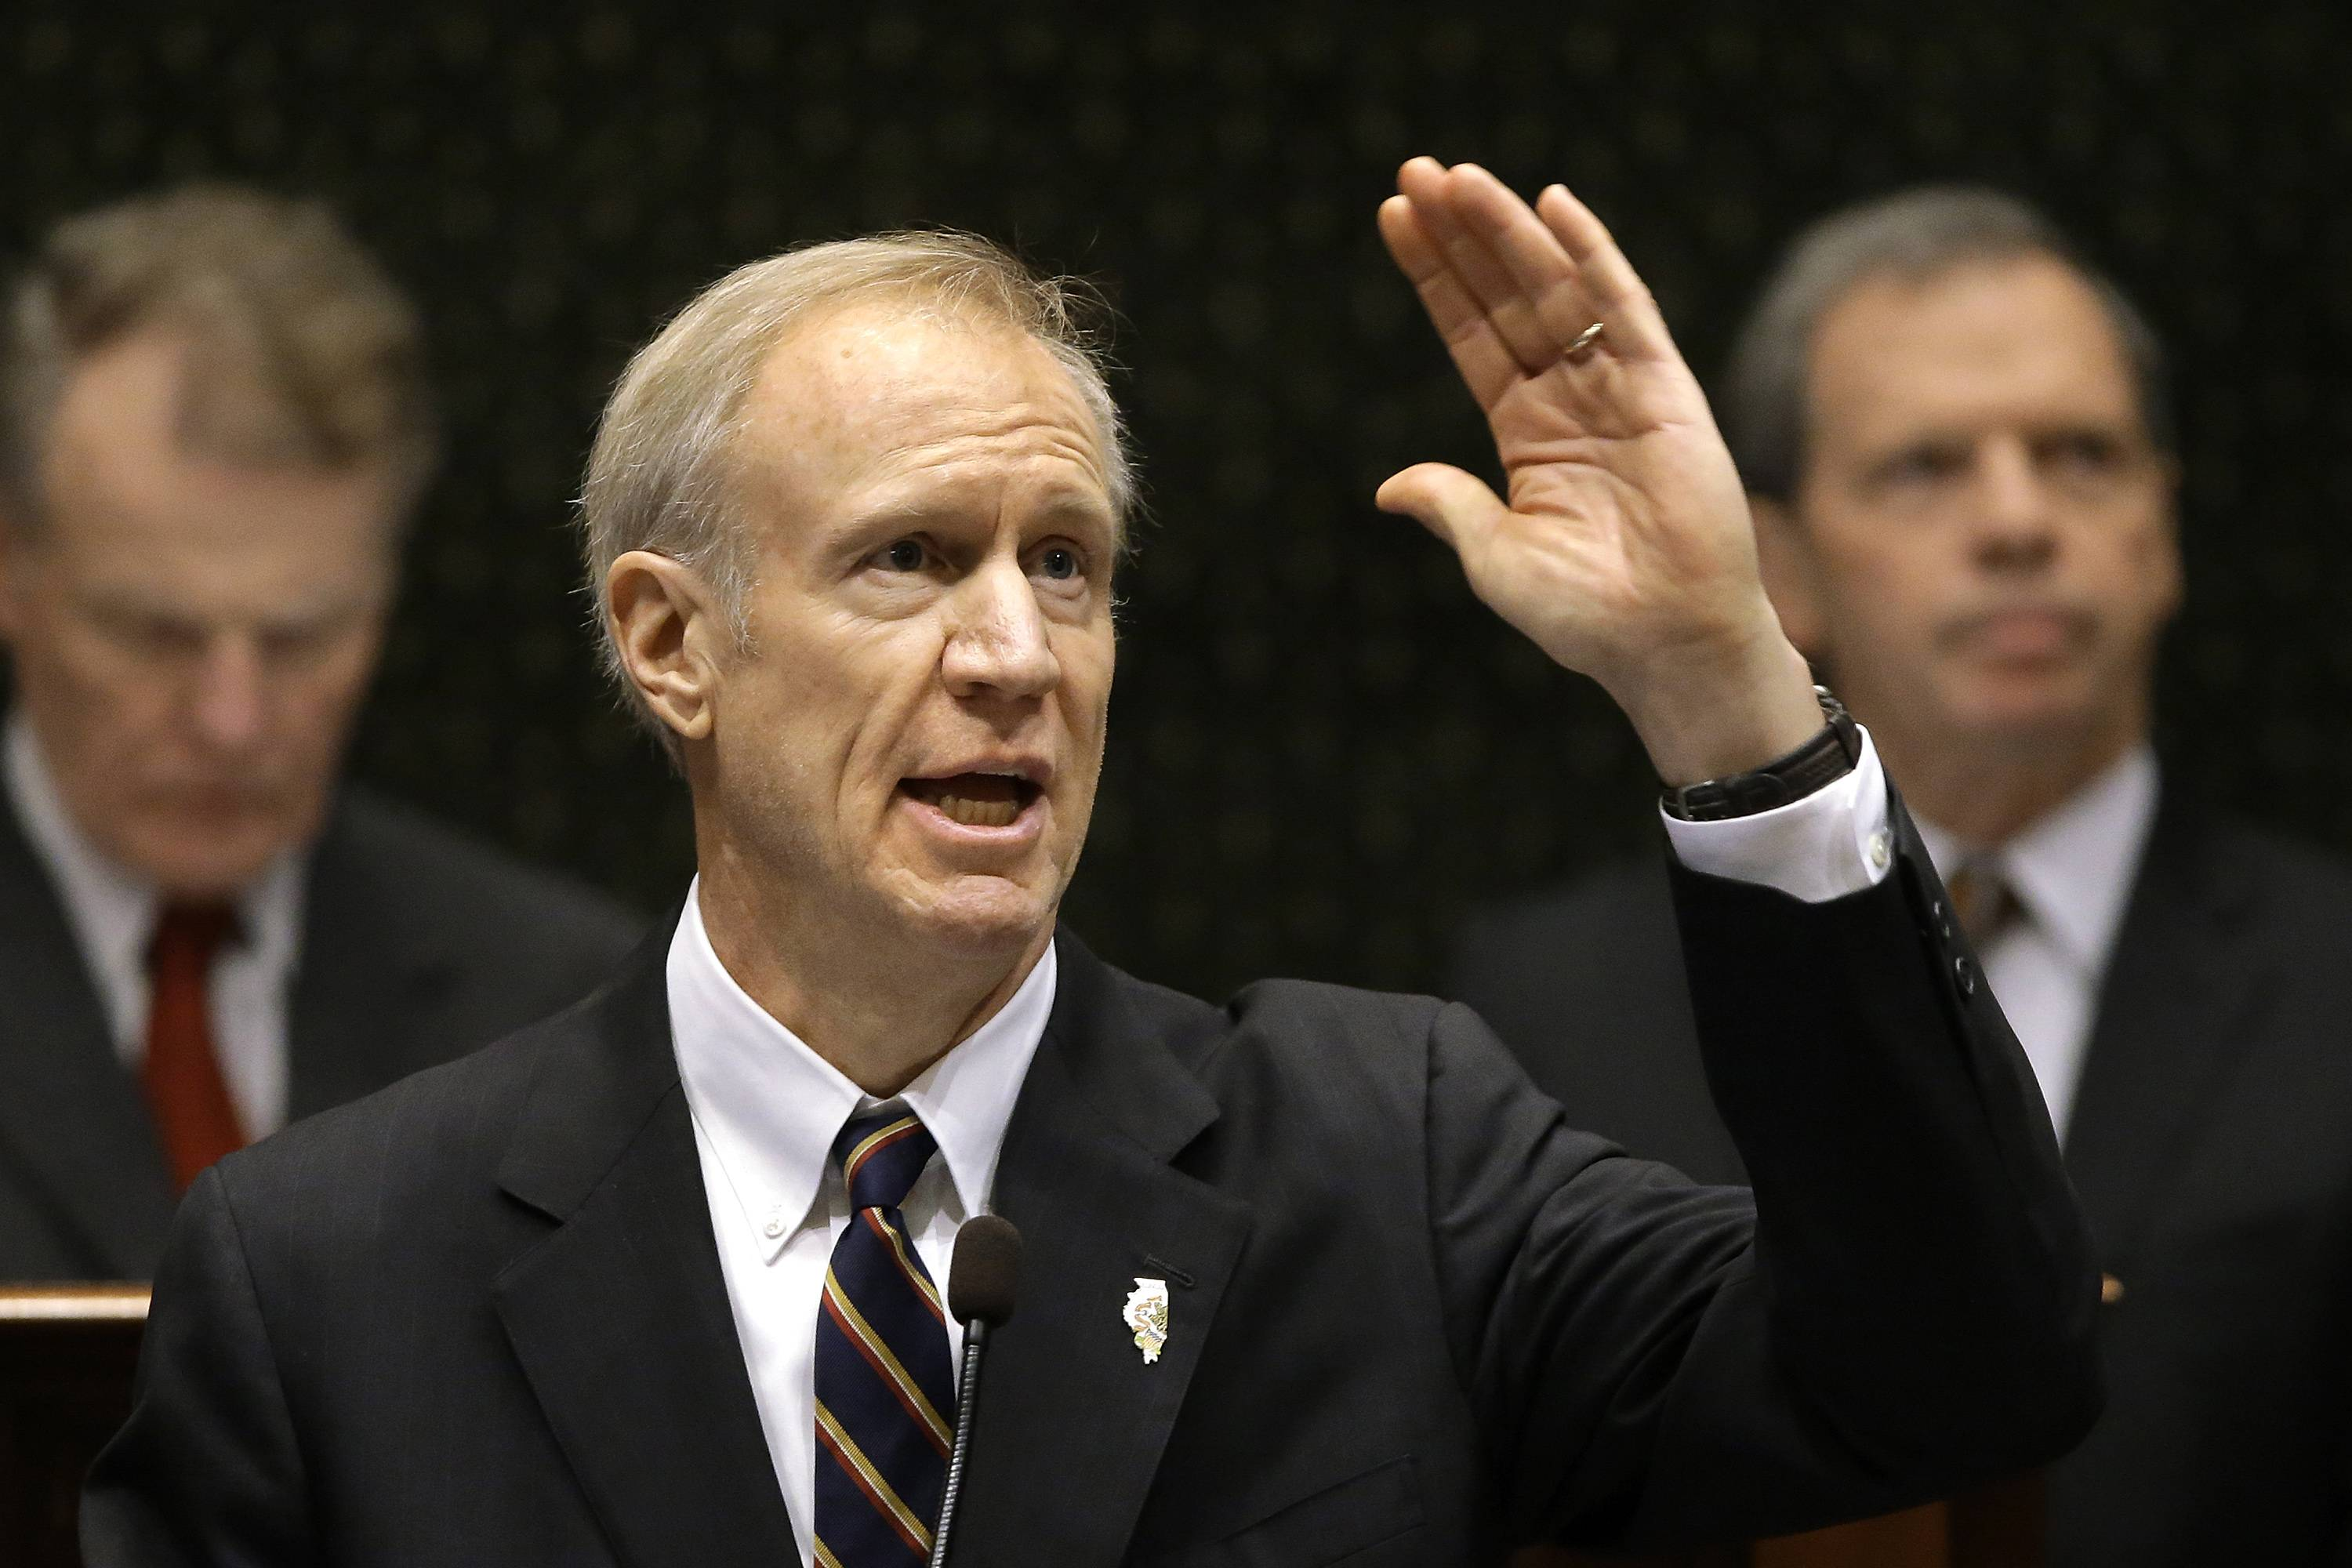 Rauner: Help poor schools but don't cut from others